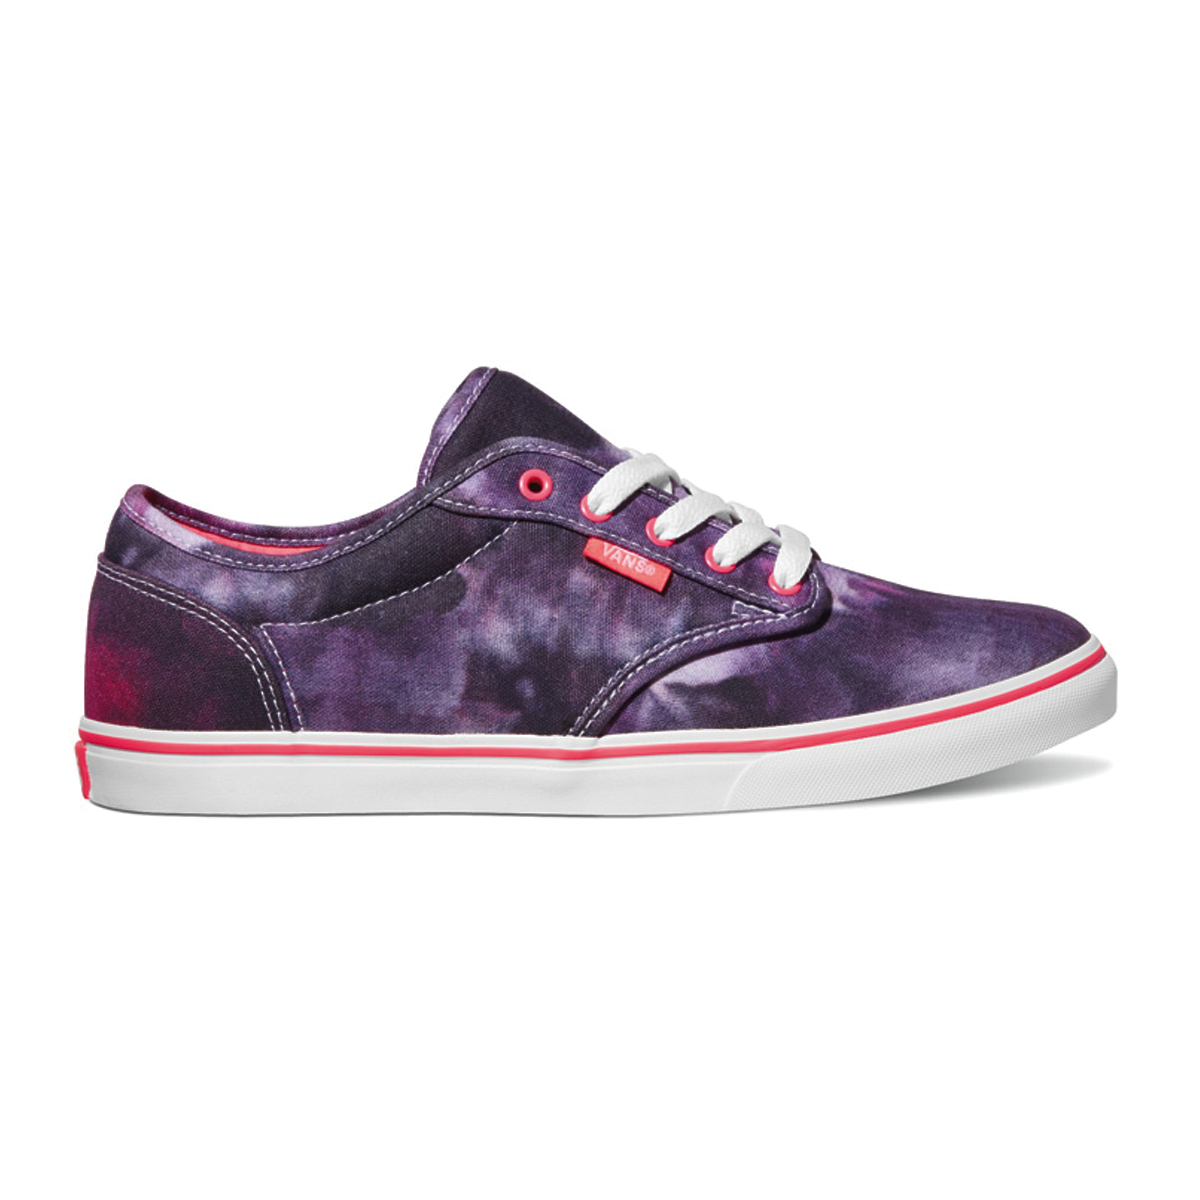 Vans Womens Atwood Low Trainers Shoes New 2014 in Various ...